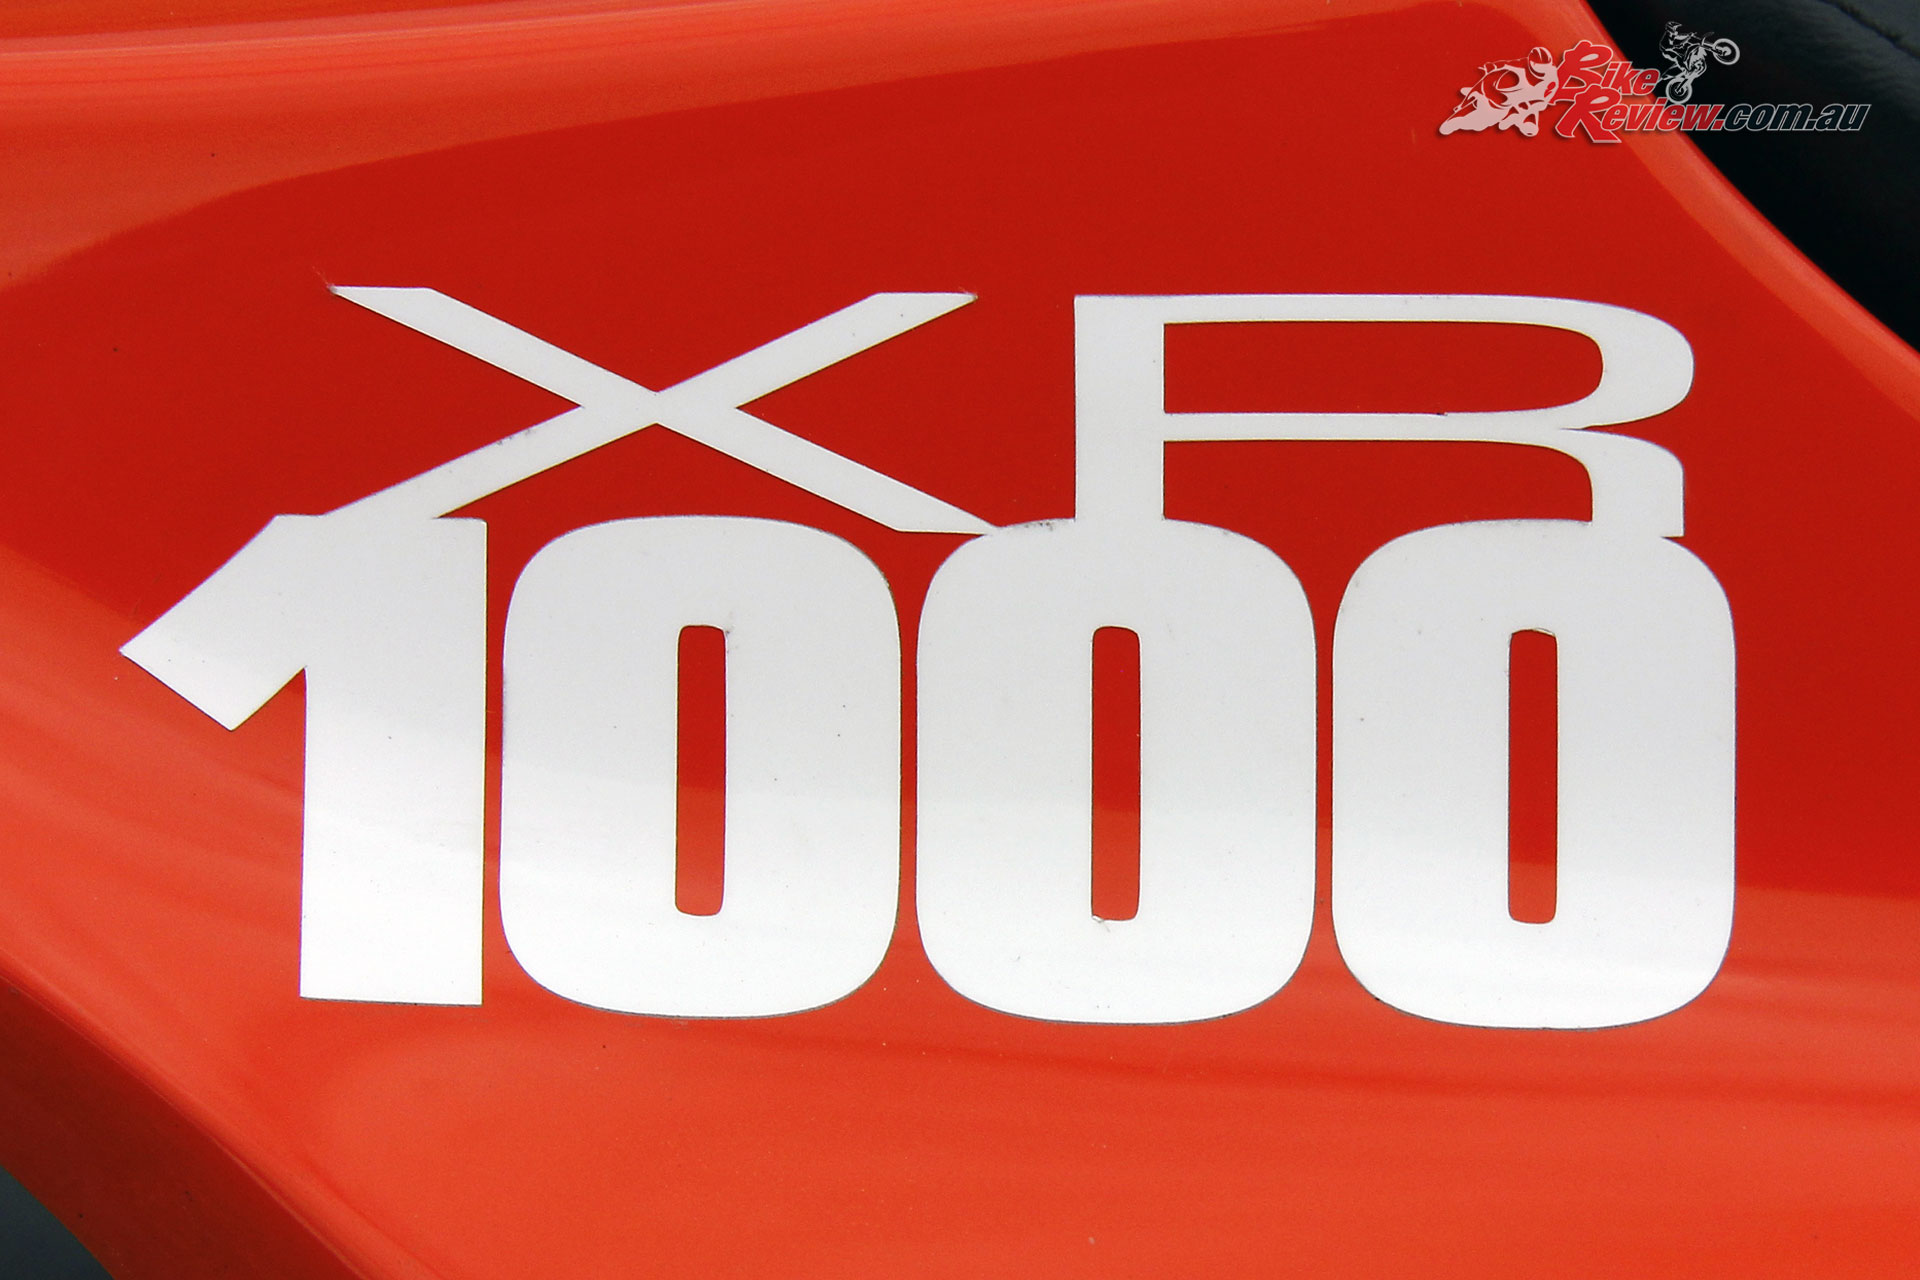 The XR 1000 was a tribute to the highly successful XR 750